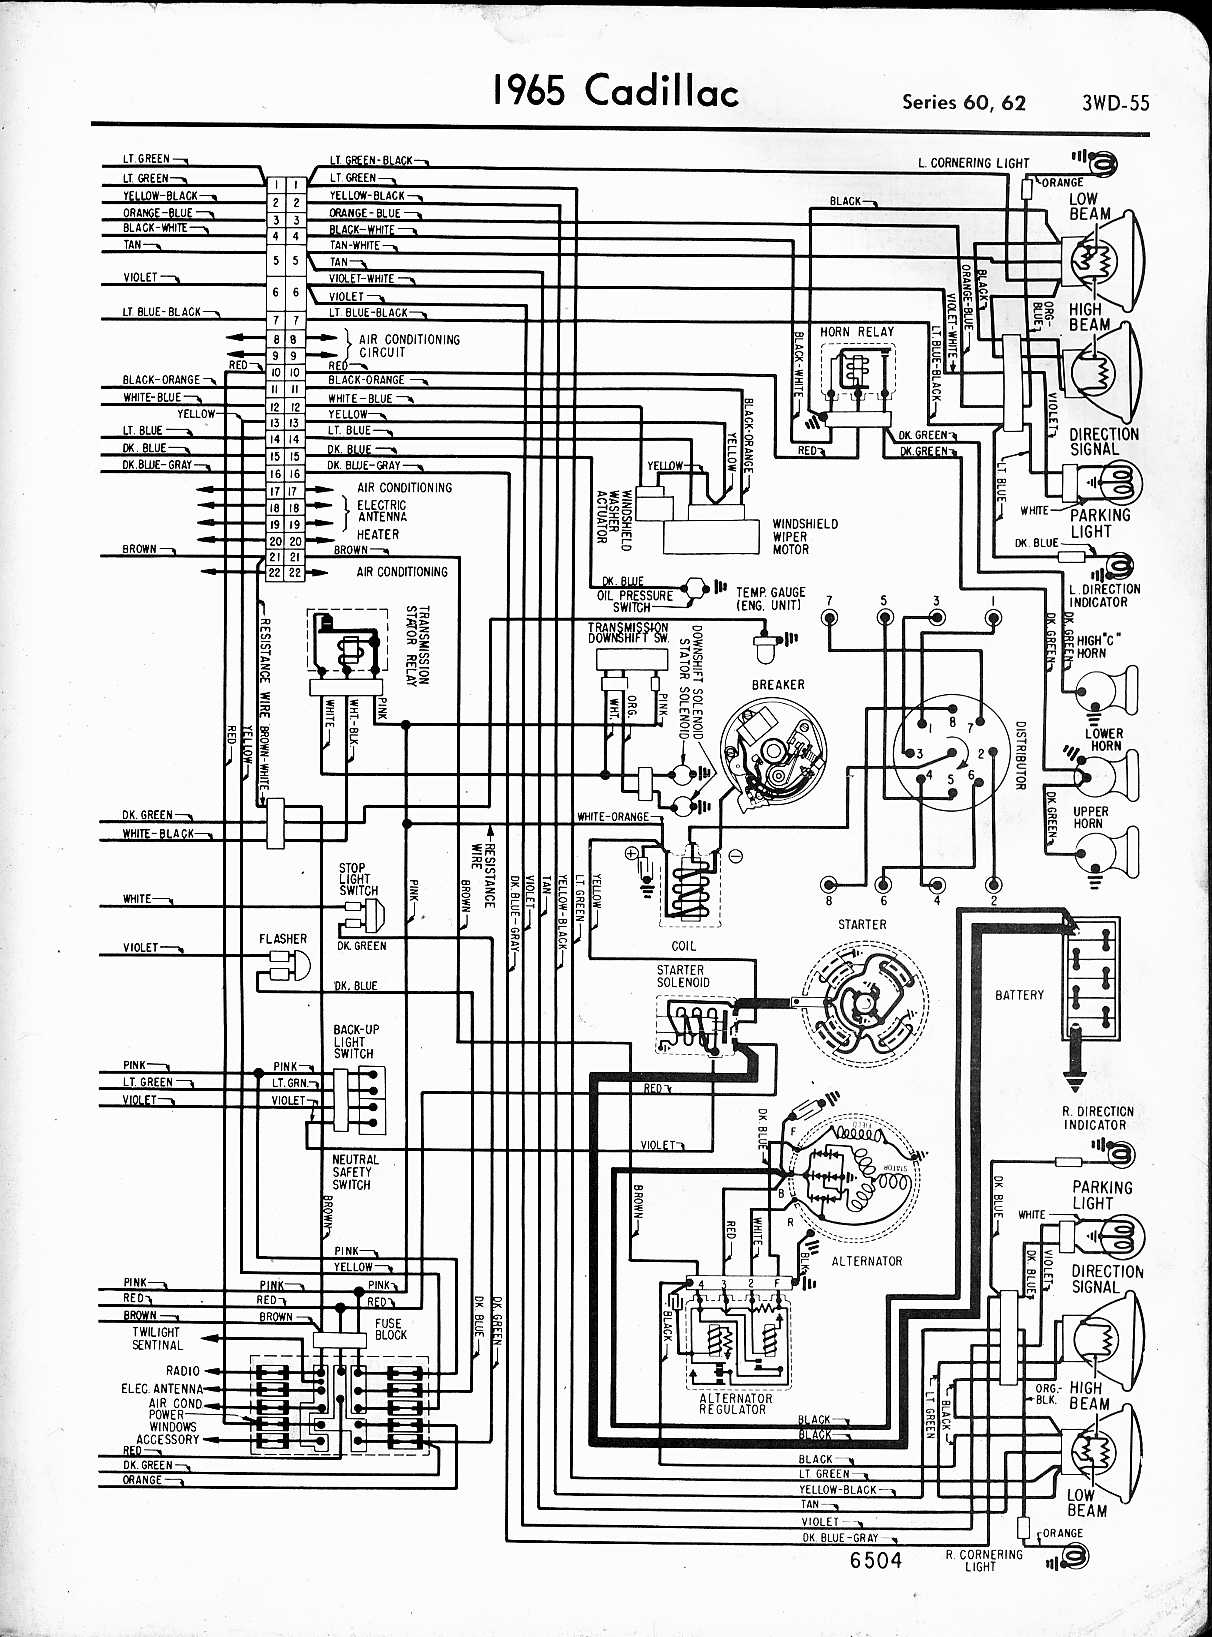 1965 Cadillac Wiring Diagram Reinvent Your Mack Rd688s Fuse Diagrams 1957 Rh Oldcarmanualproject Com Starter 1998